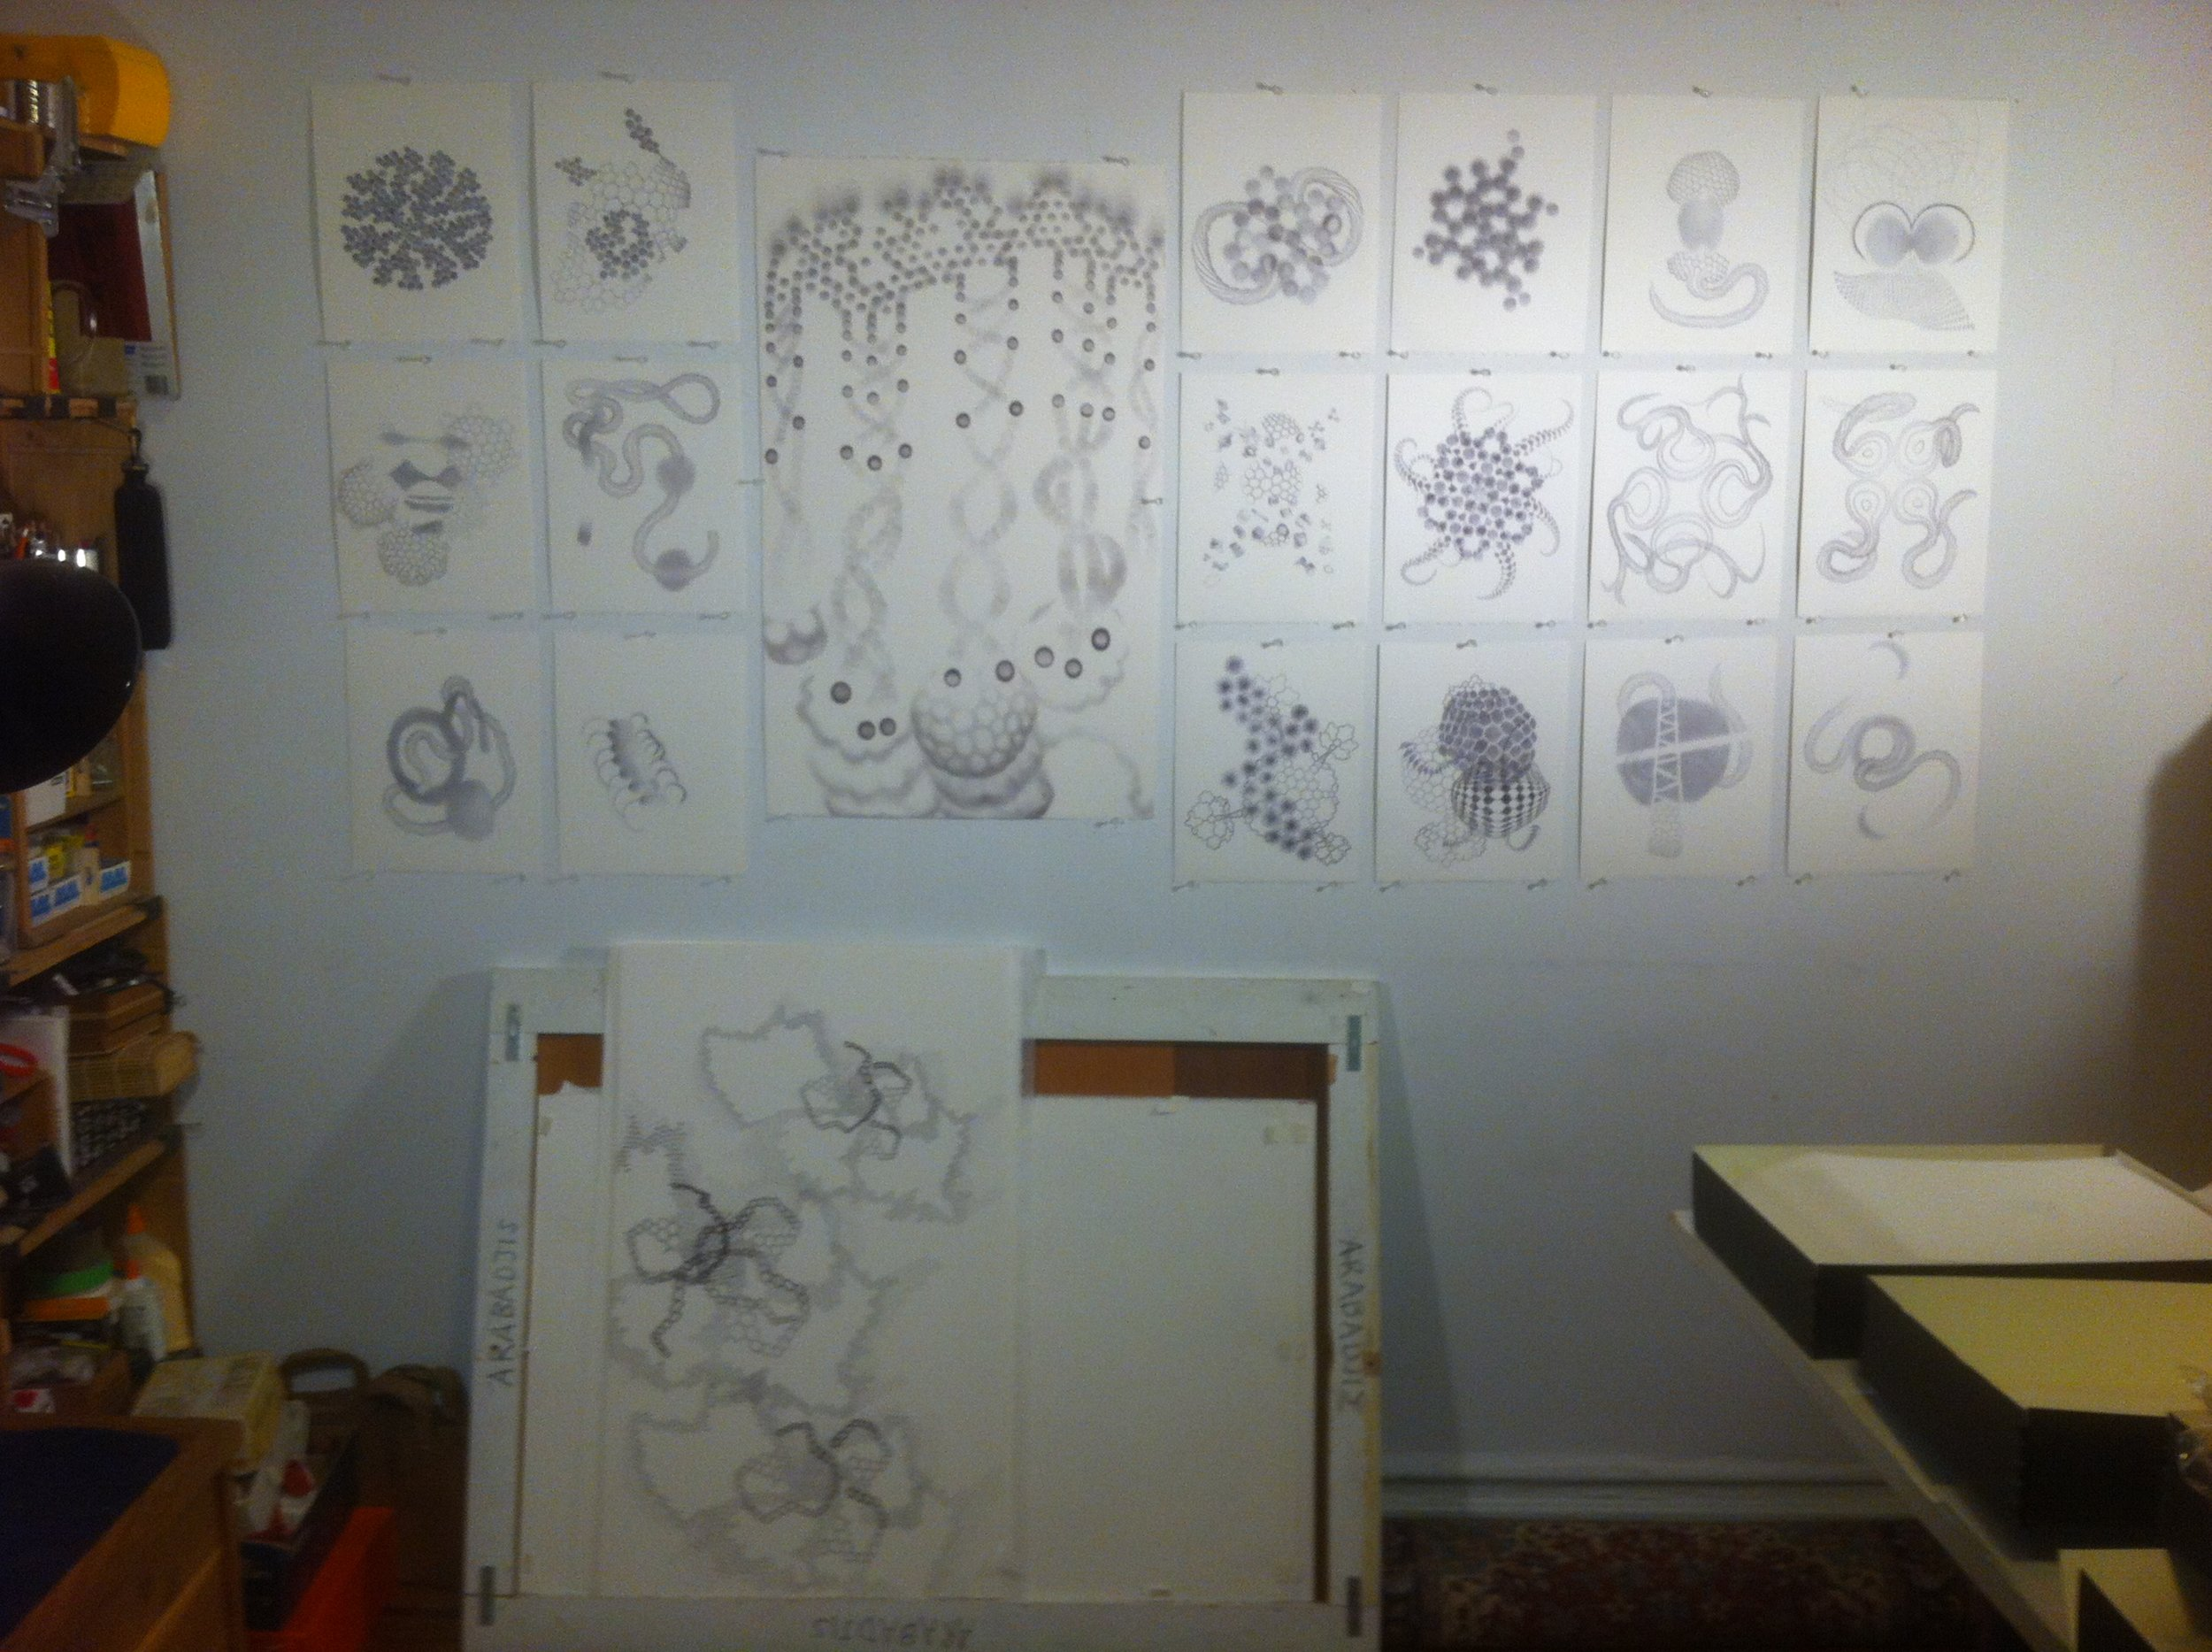 Work in progress, 2012